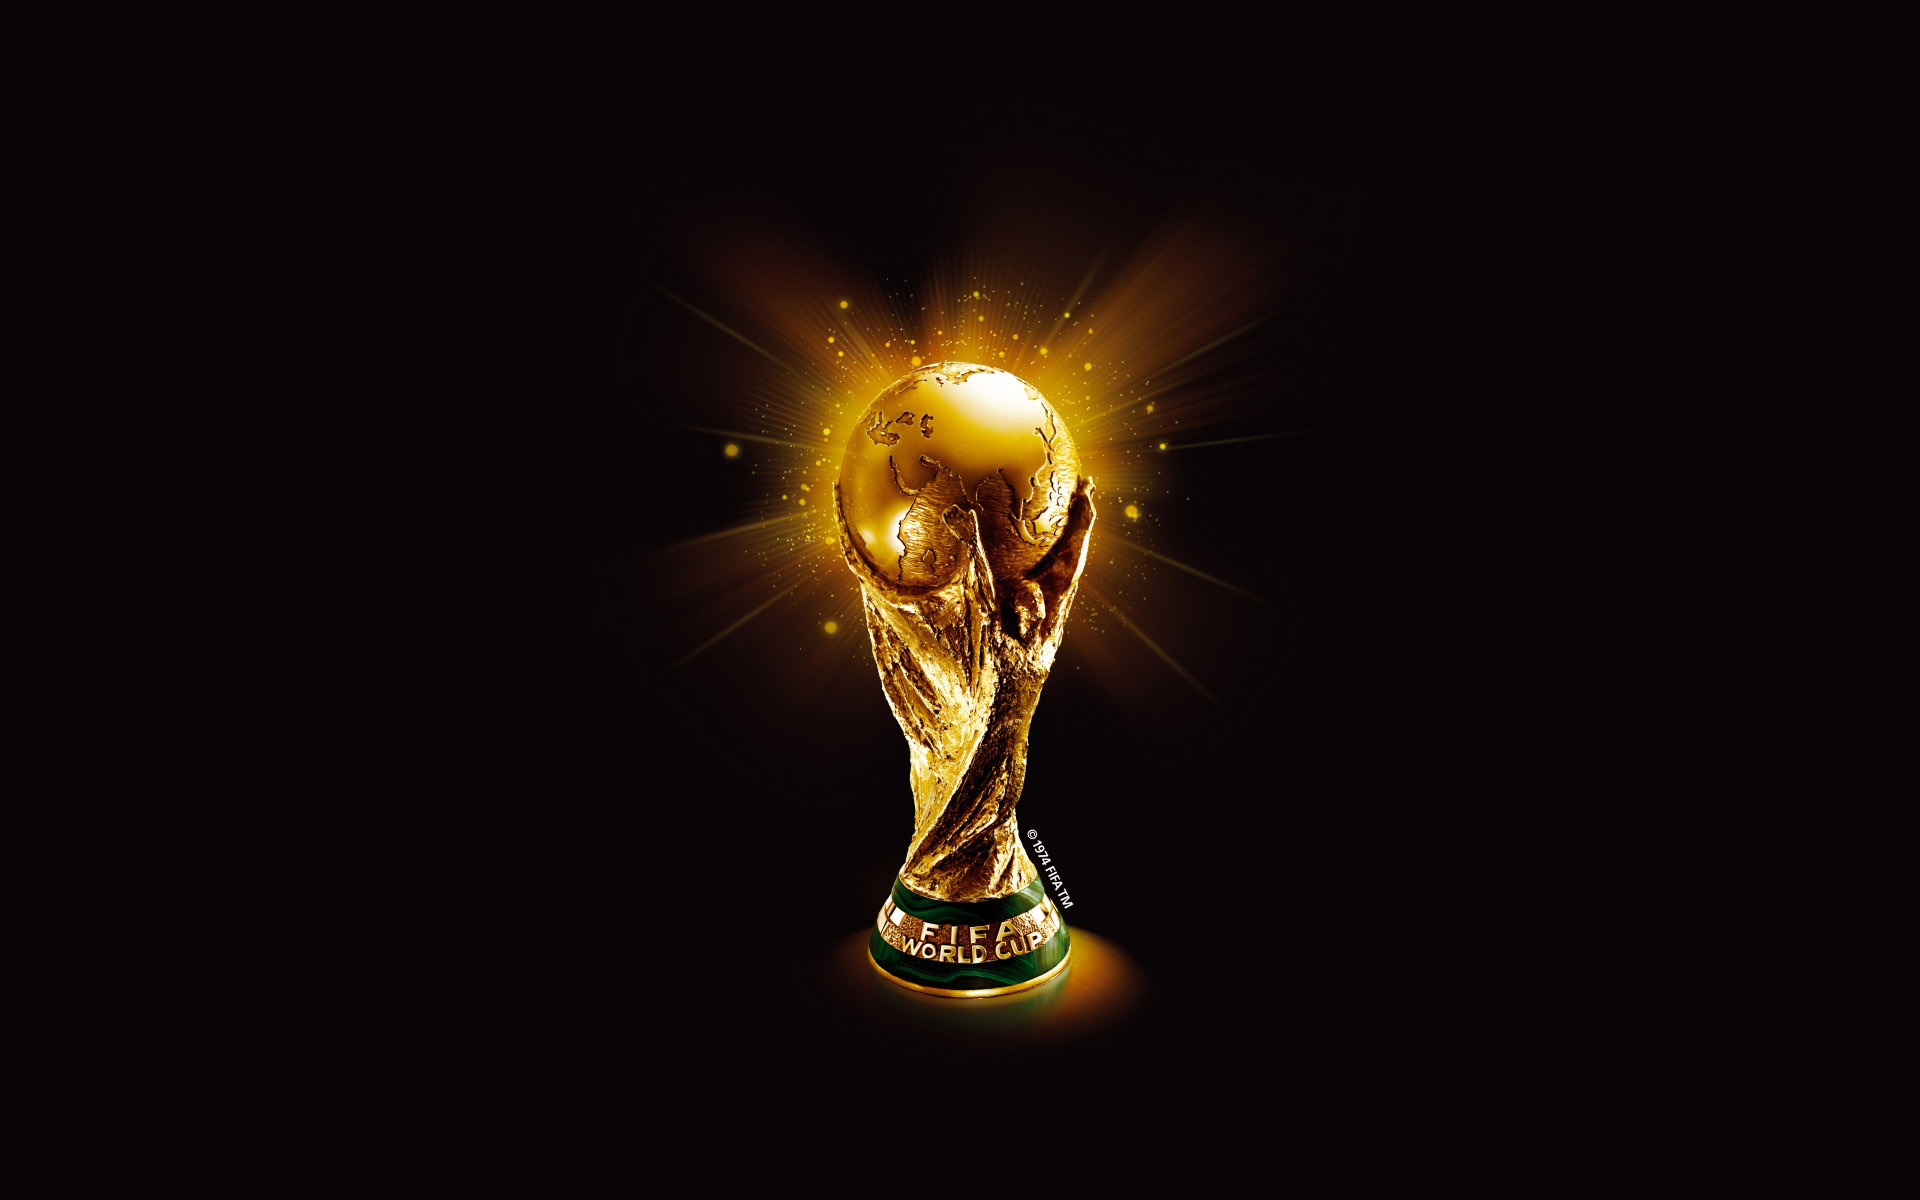 FIFA 2014 WORLD CUP TROPHY COMES TO ANTIGUA